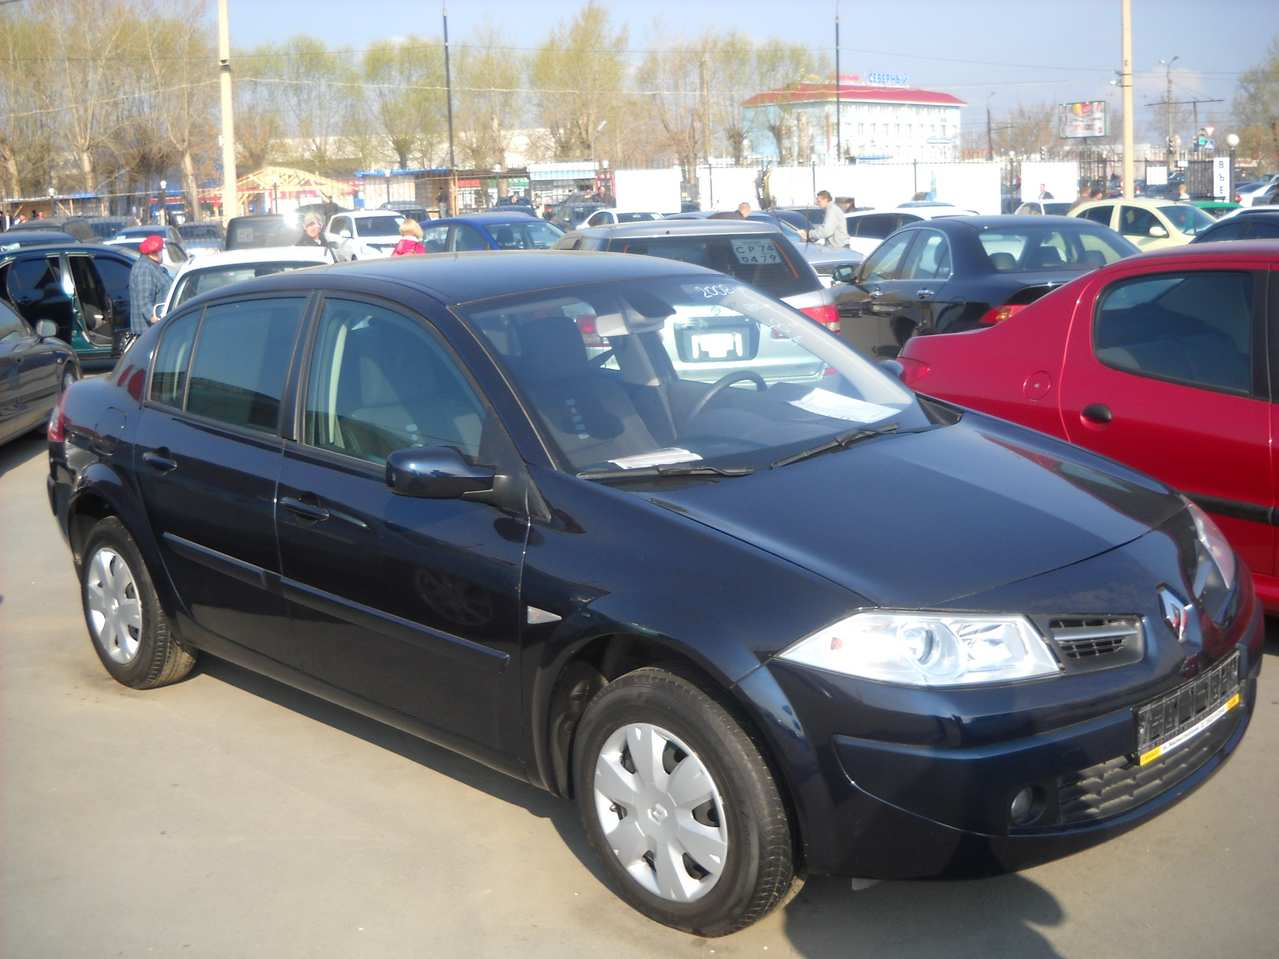 used 2008 renault megane sedan photos 1600cc gasoline ff manual for sale. Black Bedroom Furniture Sets. Home Design Ideas